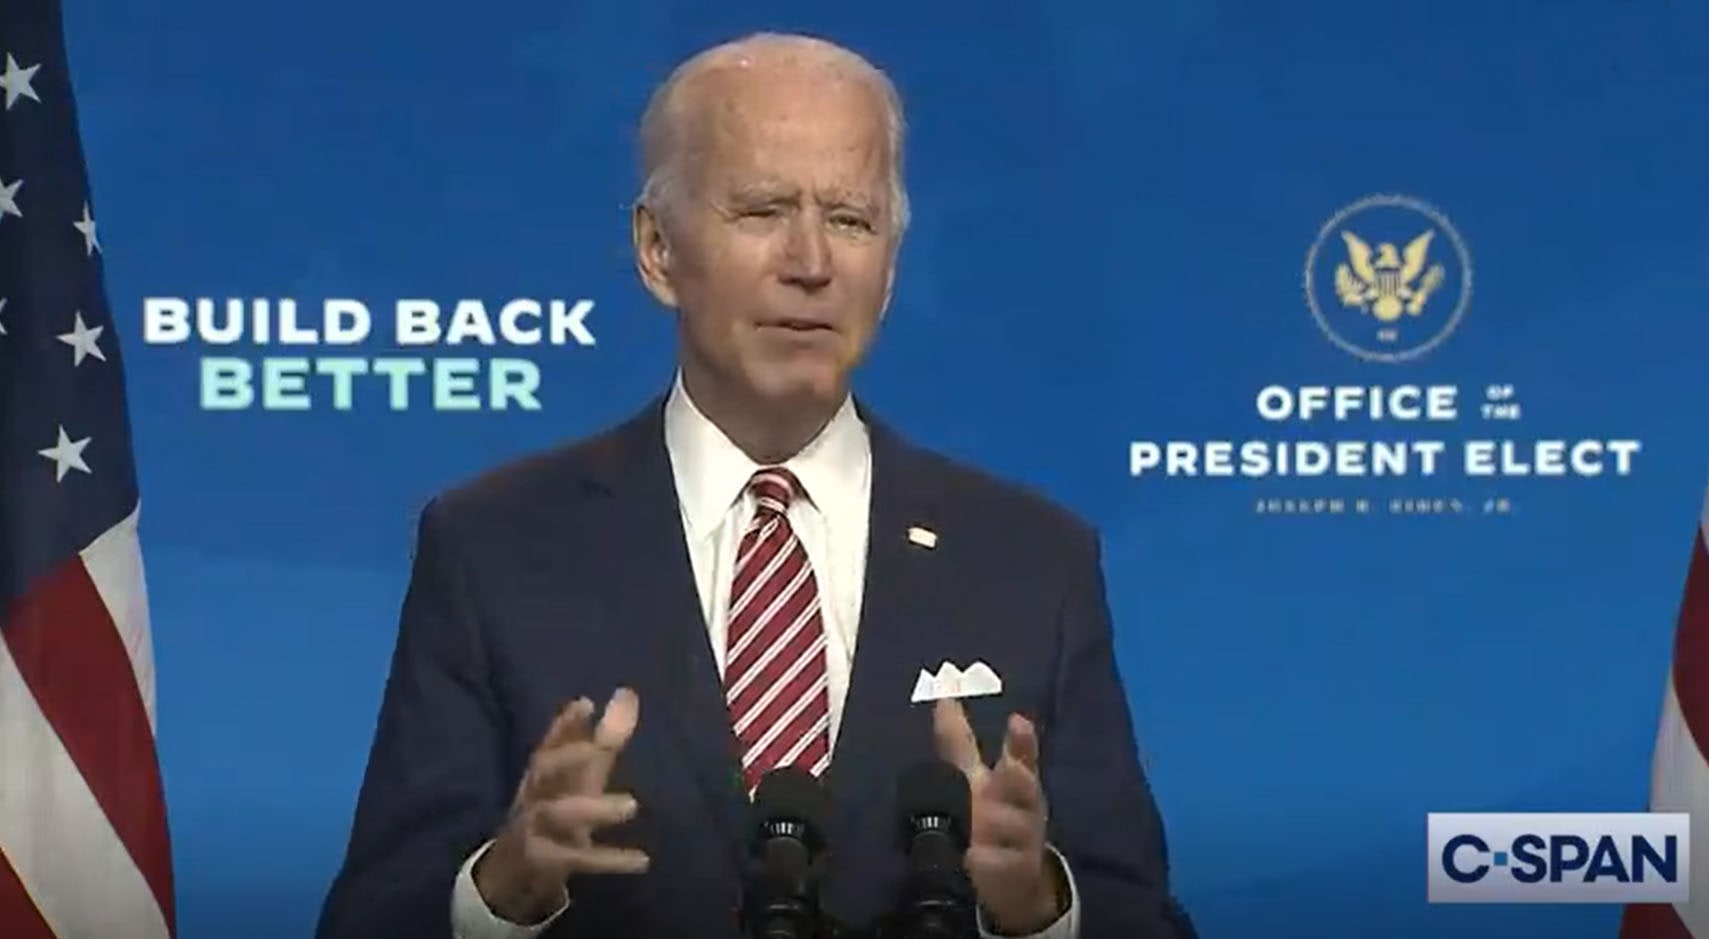 Biden's first order of business may be to undo Trump's policies, but it won't be easy